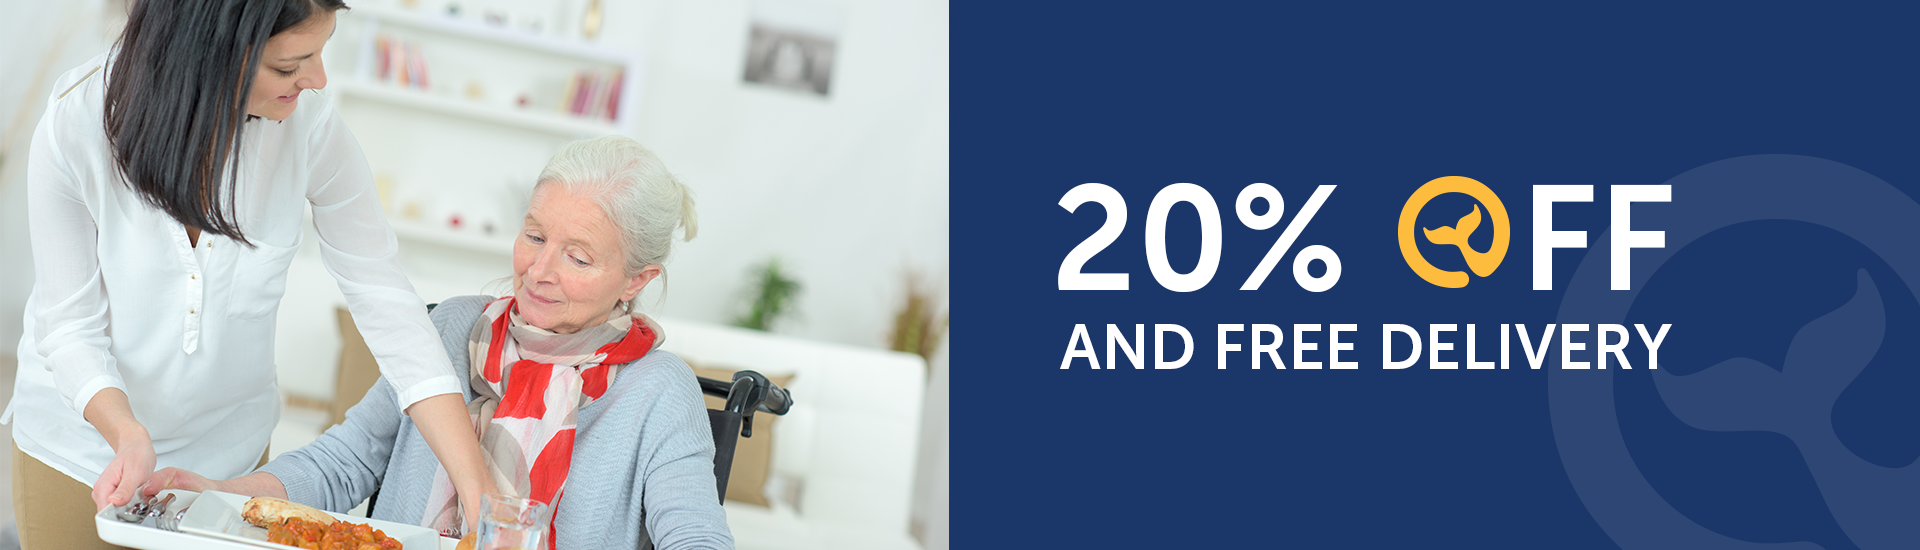 20% Off with Free Delivery for all Assisted living, Senior & Retirement Home facilities